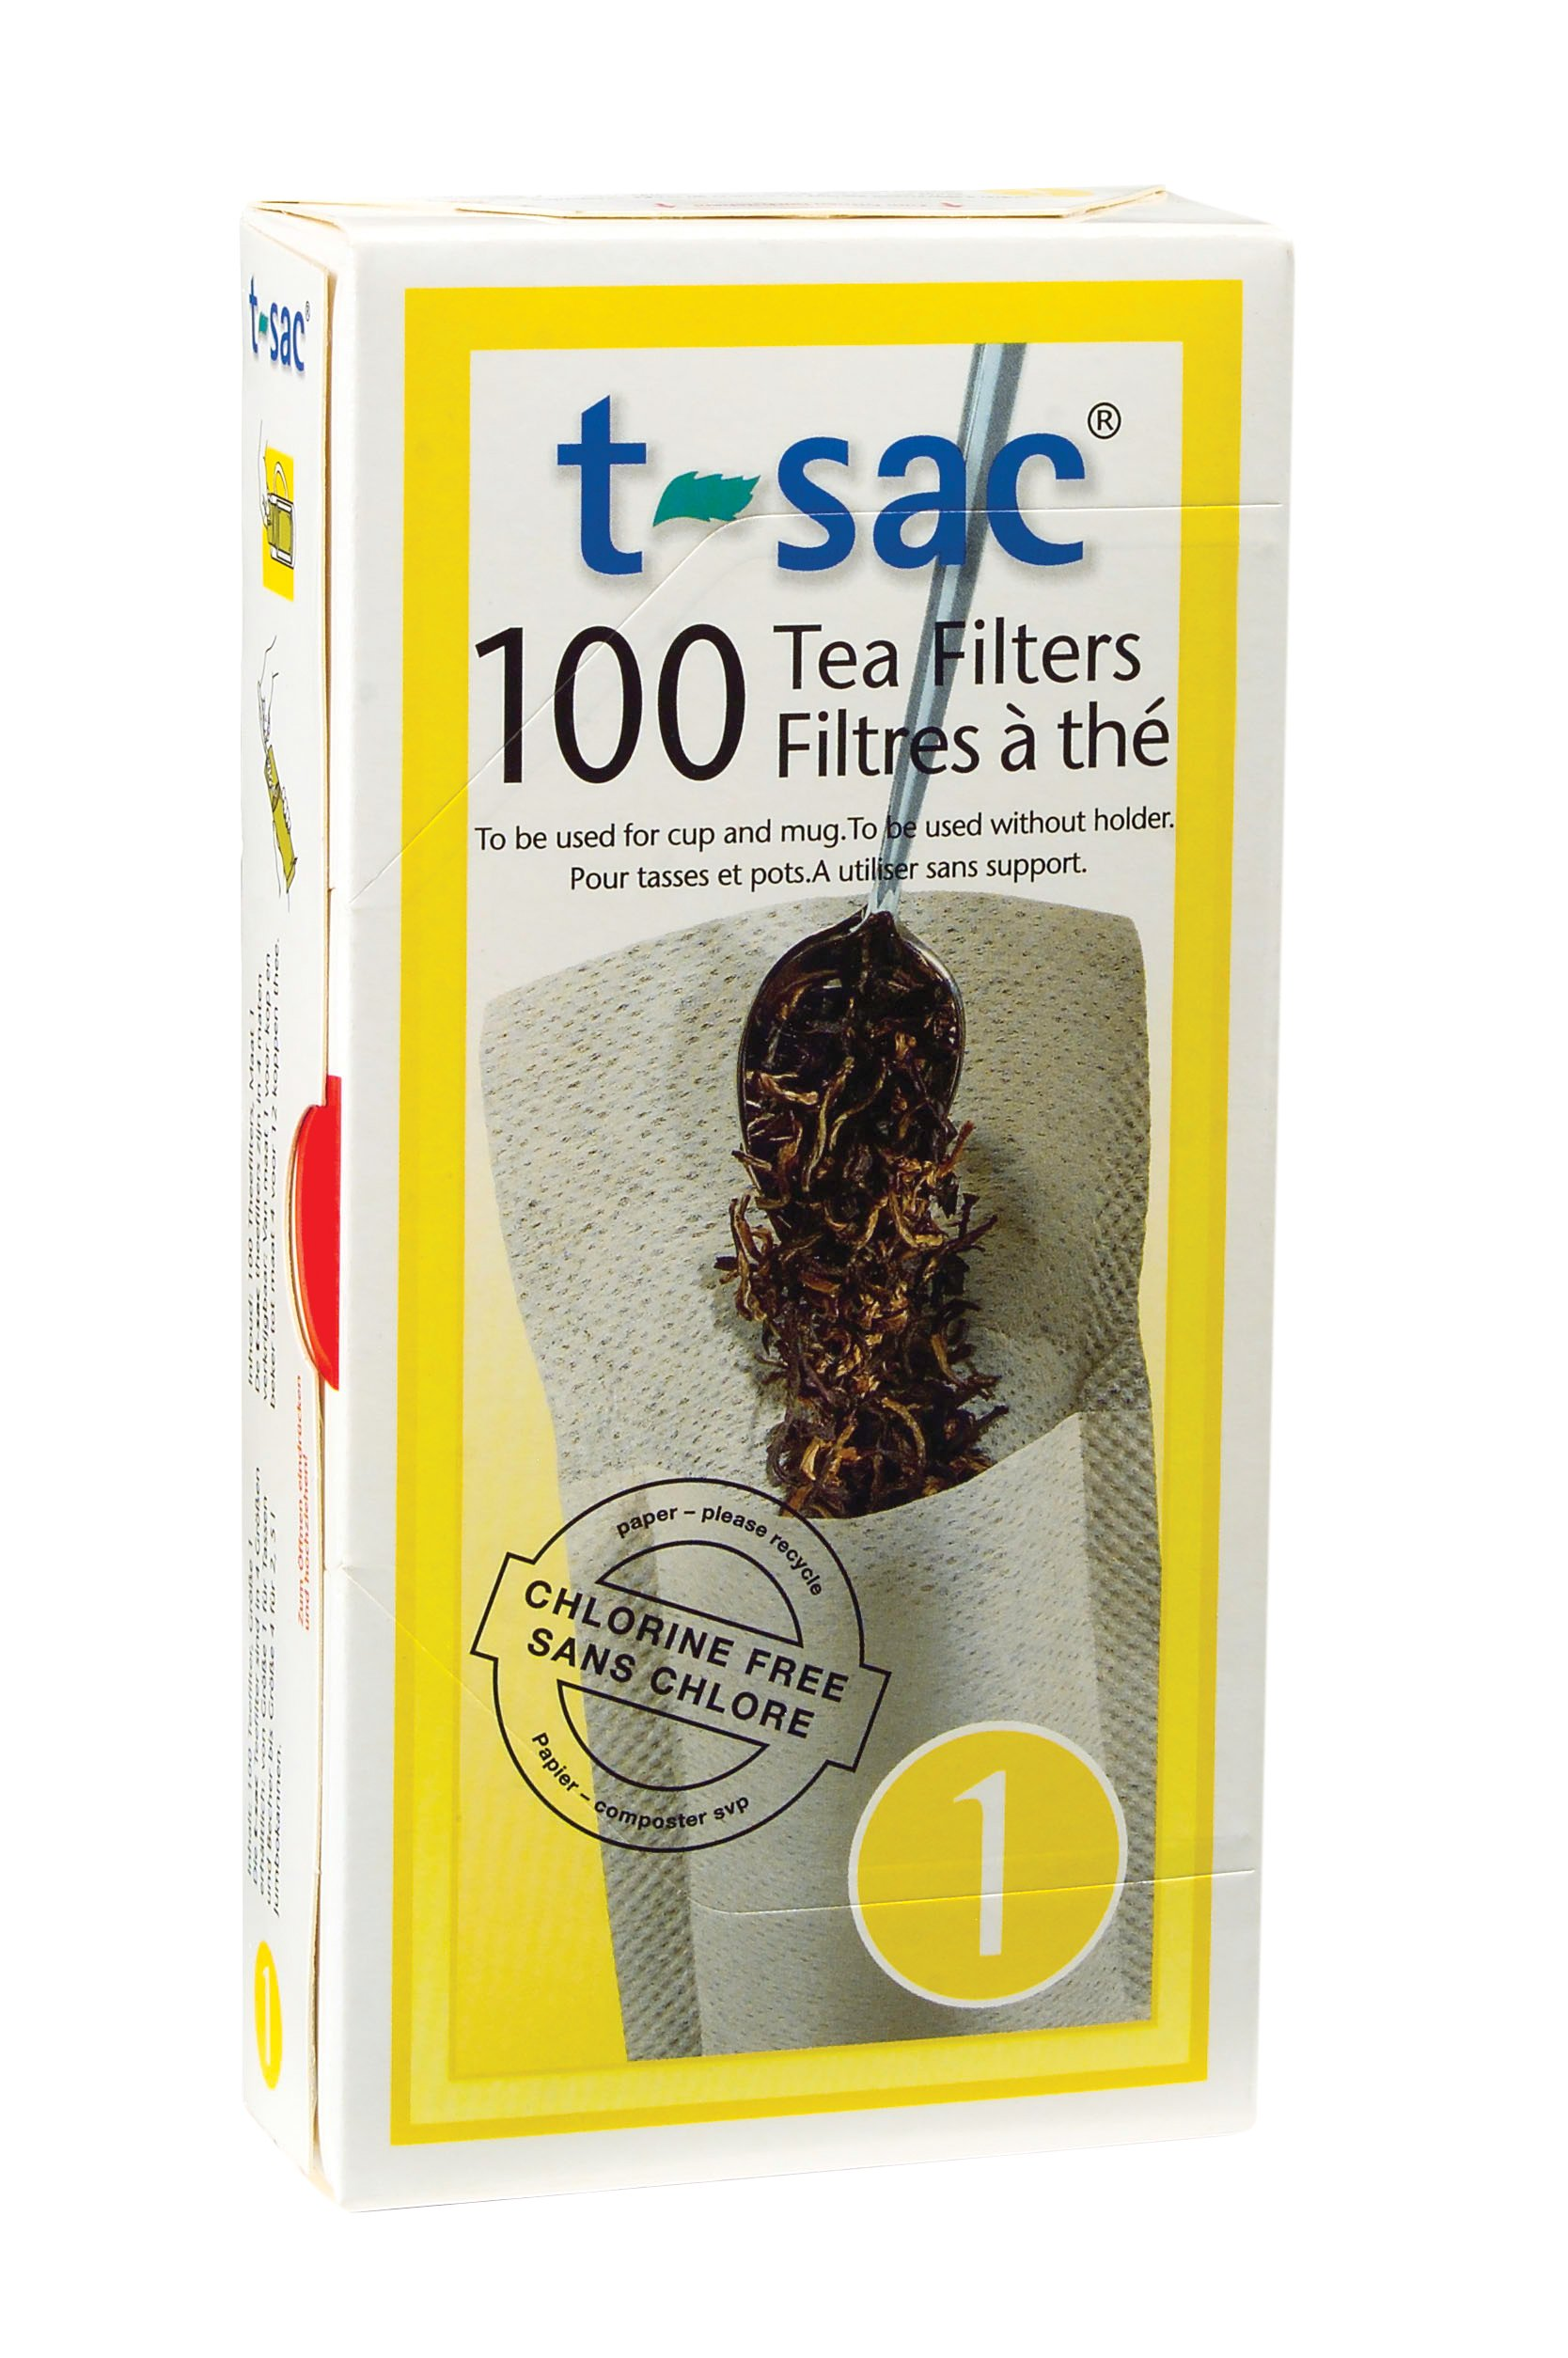 T-Sac Tea Filter Bags, Disposable Tea Infuser, Number 1-Size, 1-Cup Capacity, Set of 400